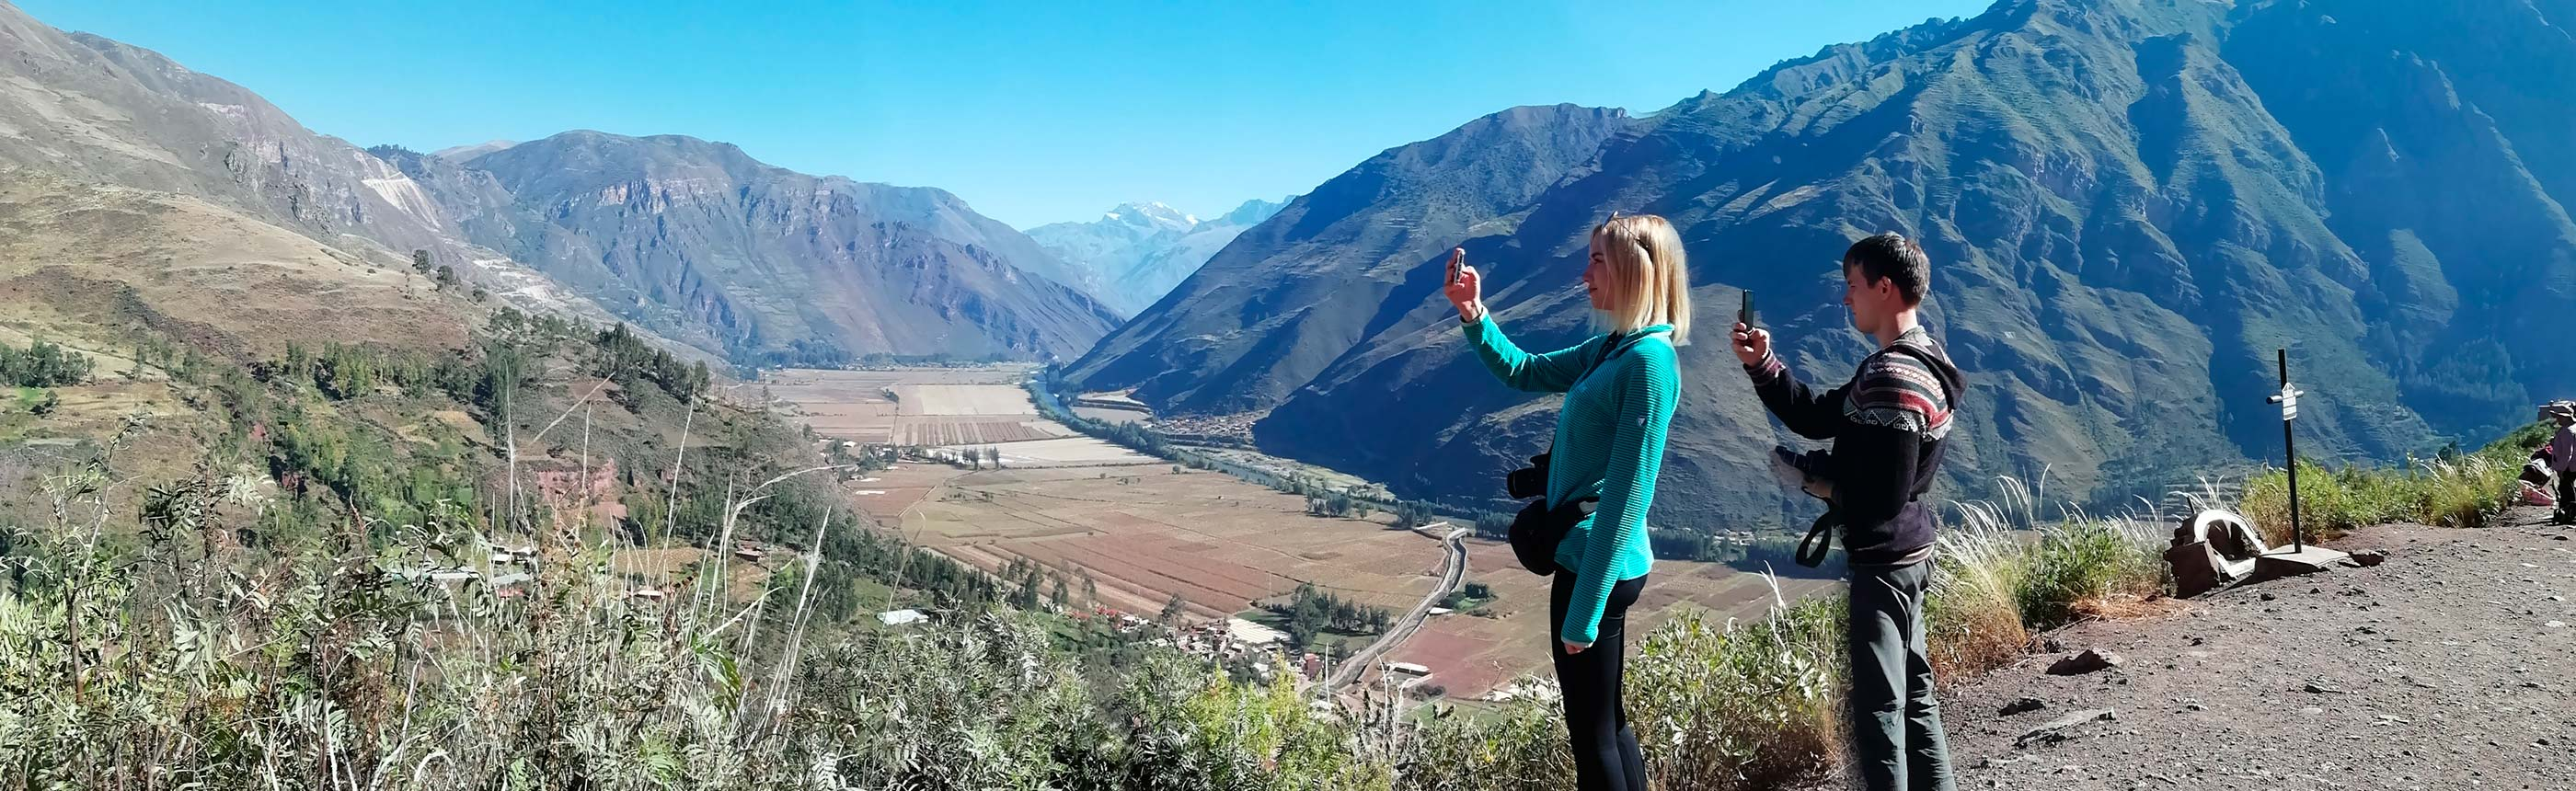 Enjoy the View of the Sacred Valley from lookout point of Taray on Classic Sacred Valley Trip